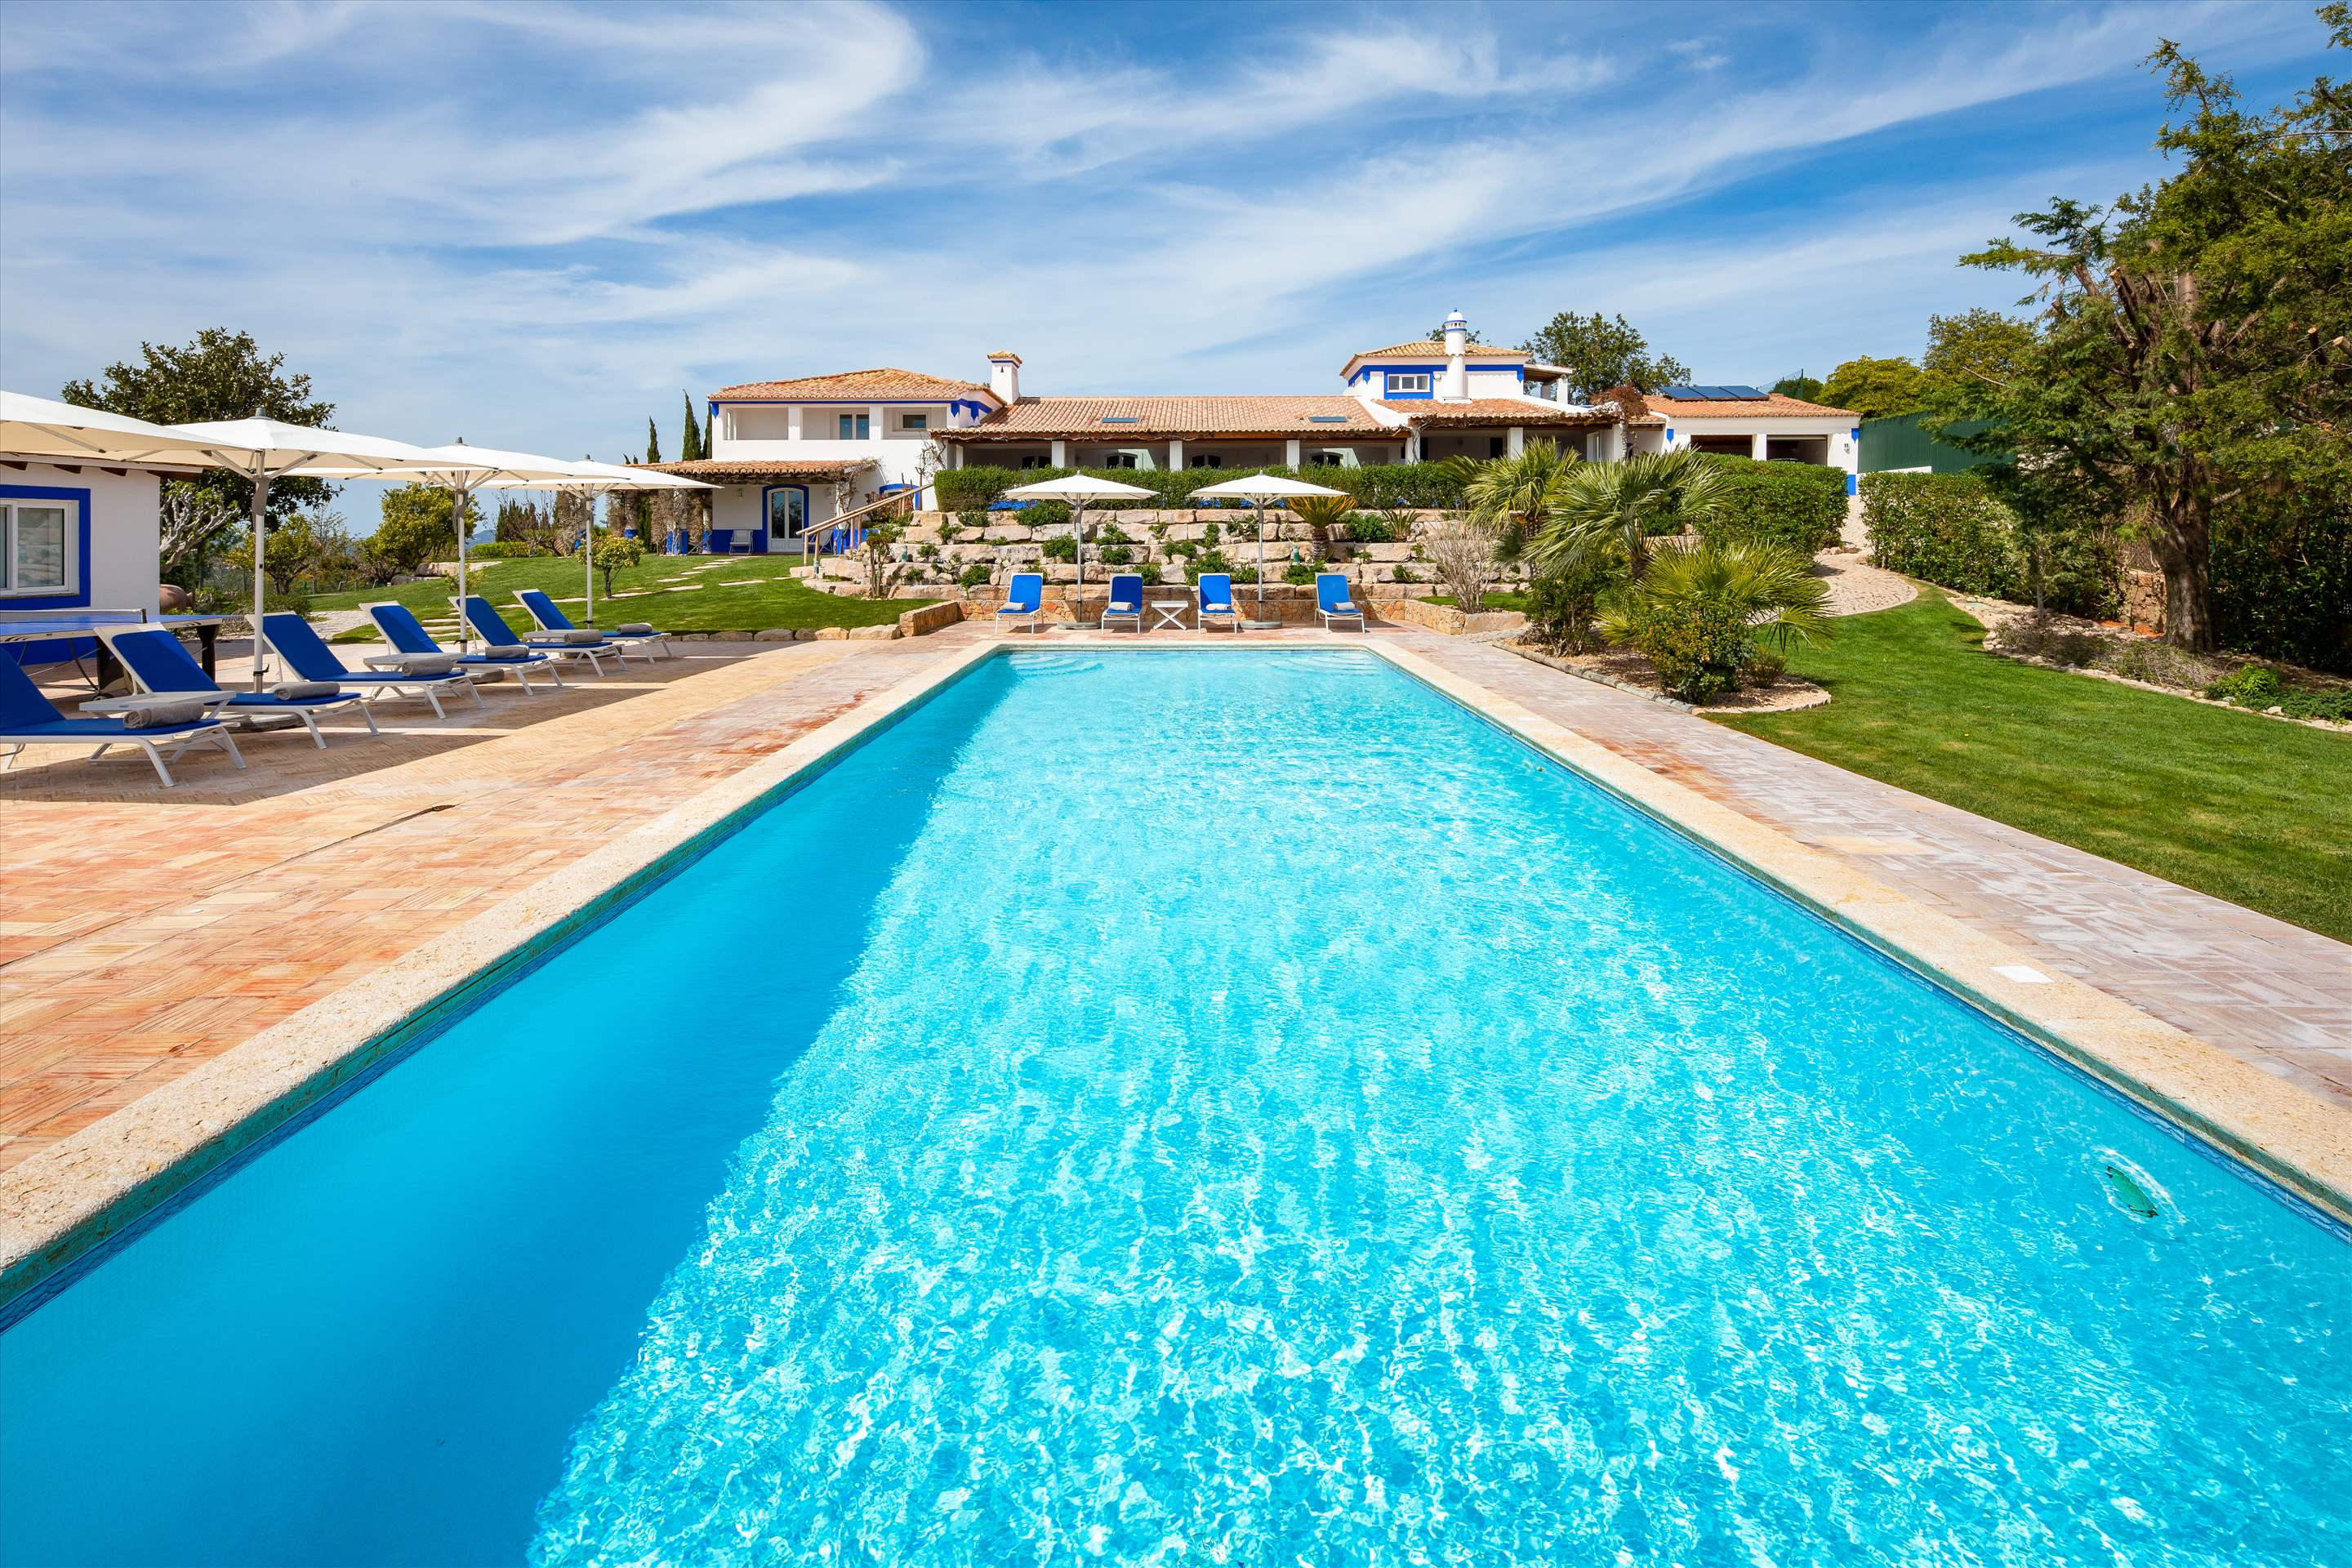 Casa da Montanha, 15-16 persons, 9 bedroom villa in Vilamoura Area, Algarve Photo #1